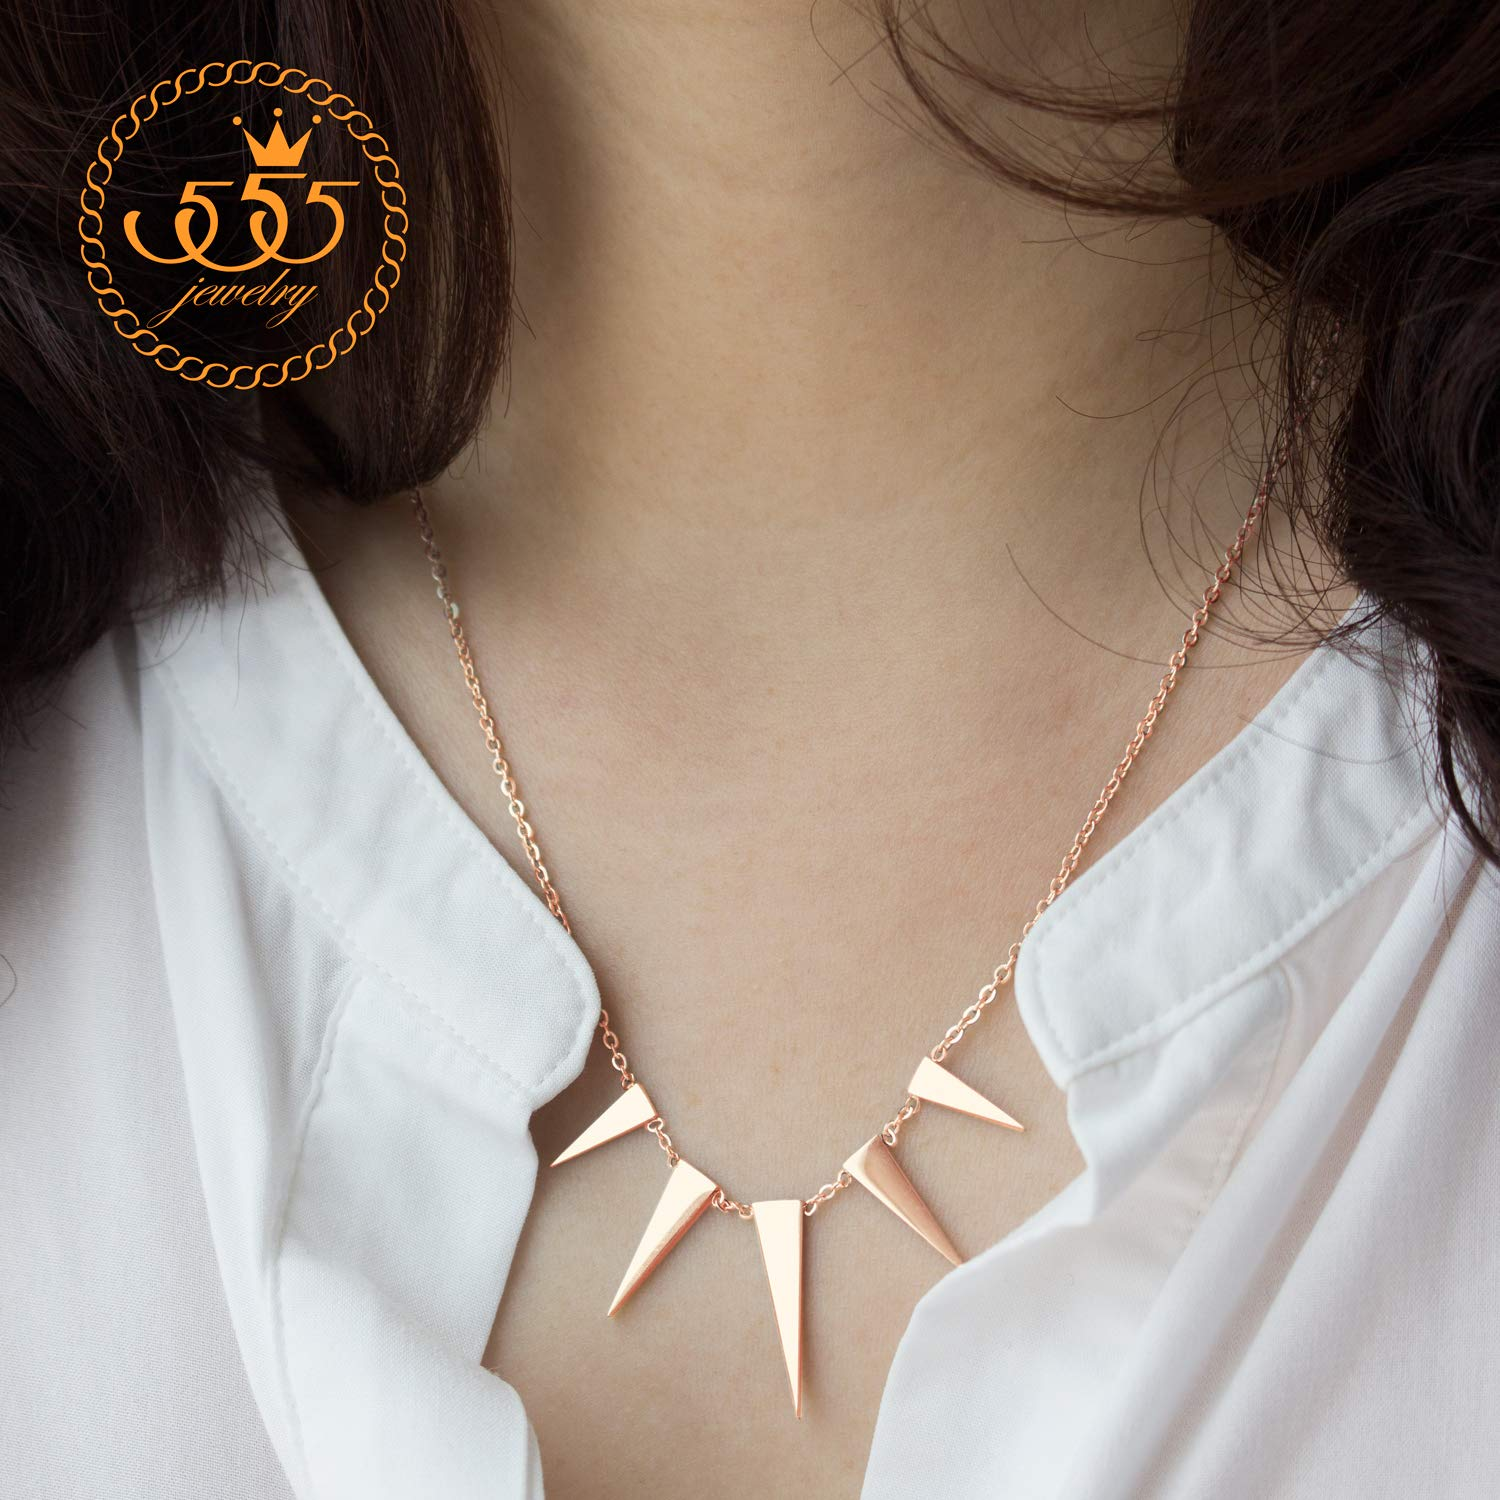 555Jewelry Womens Figaro Chain Stainless Steel Spiky Triangle Pendant Necklace